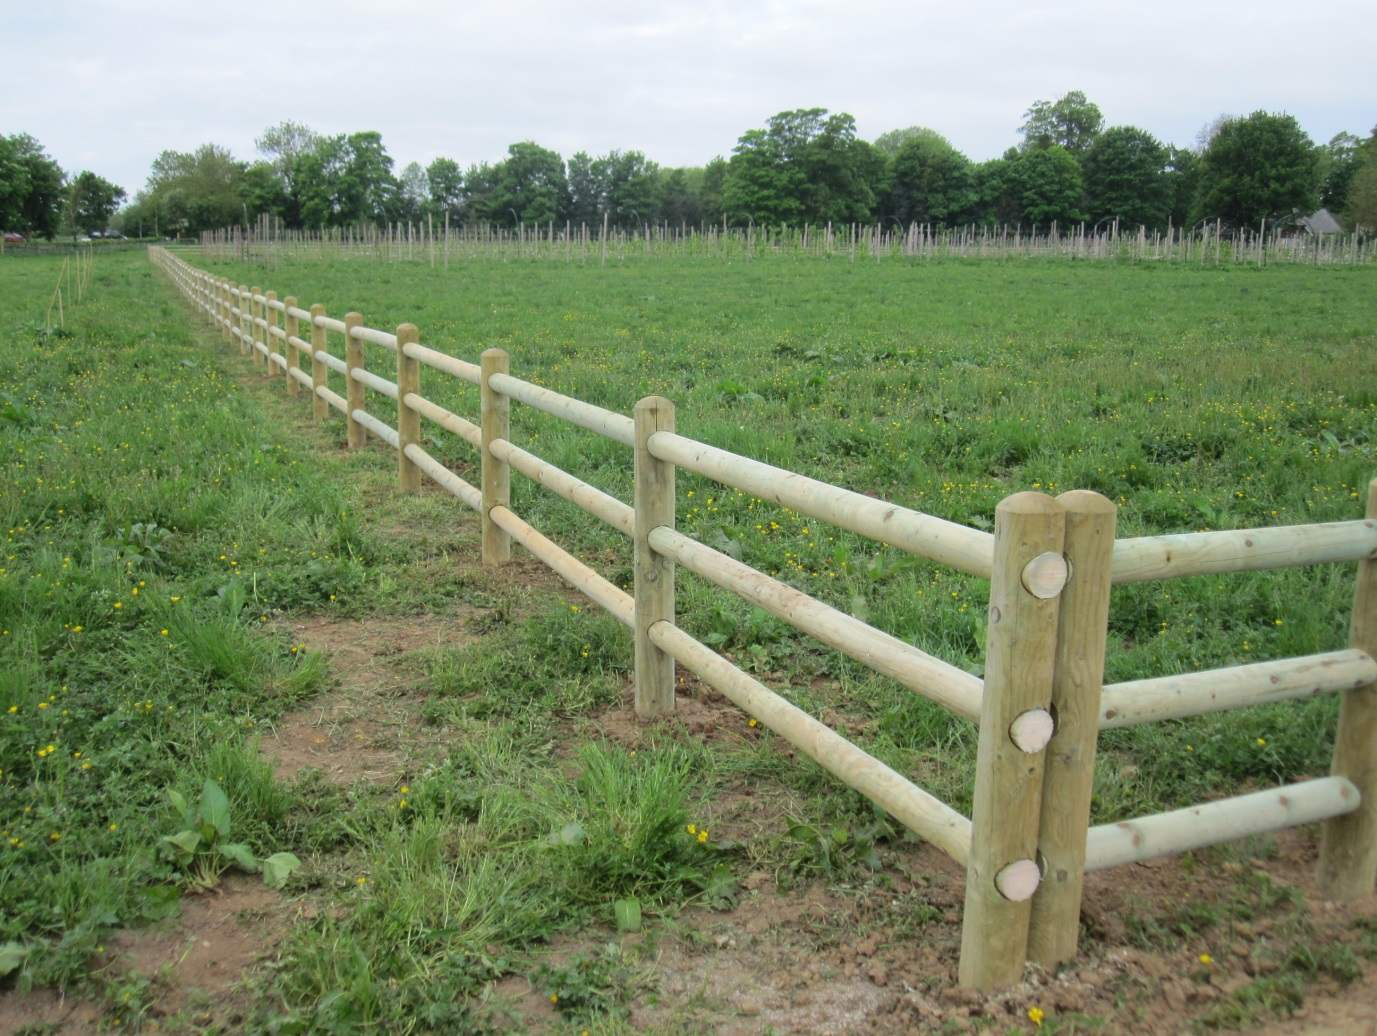 The Orchard Fence